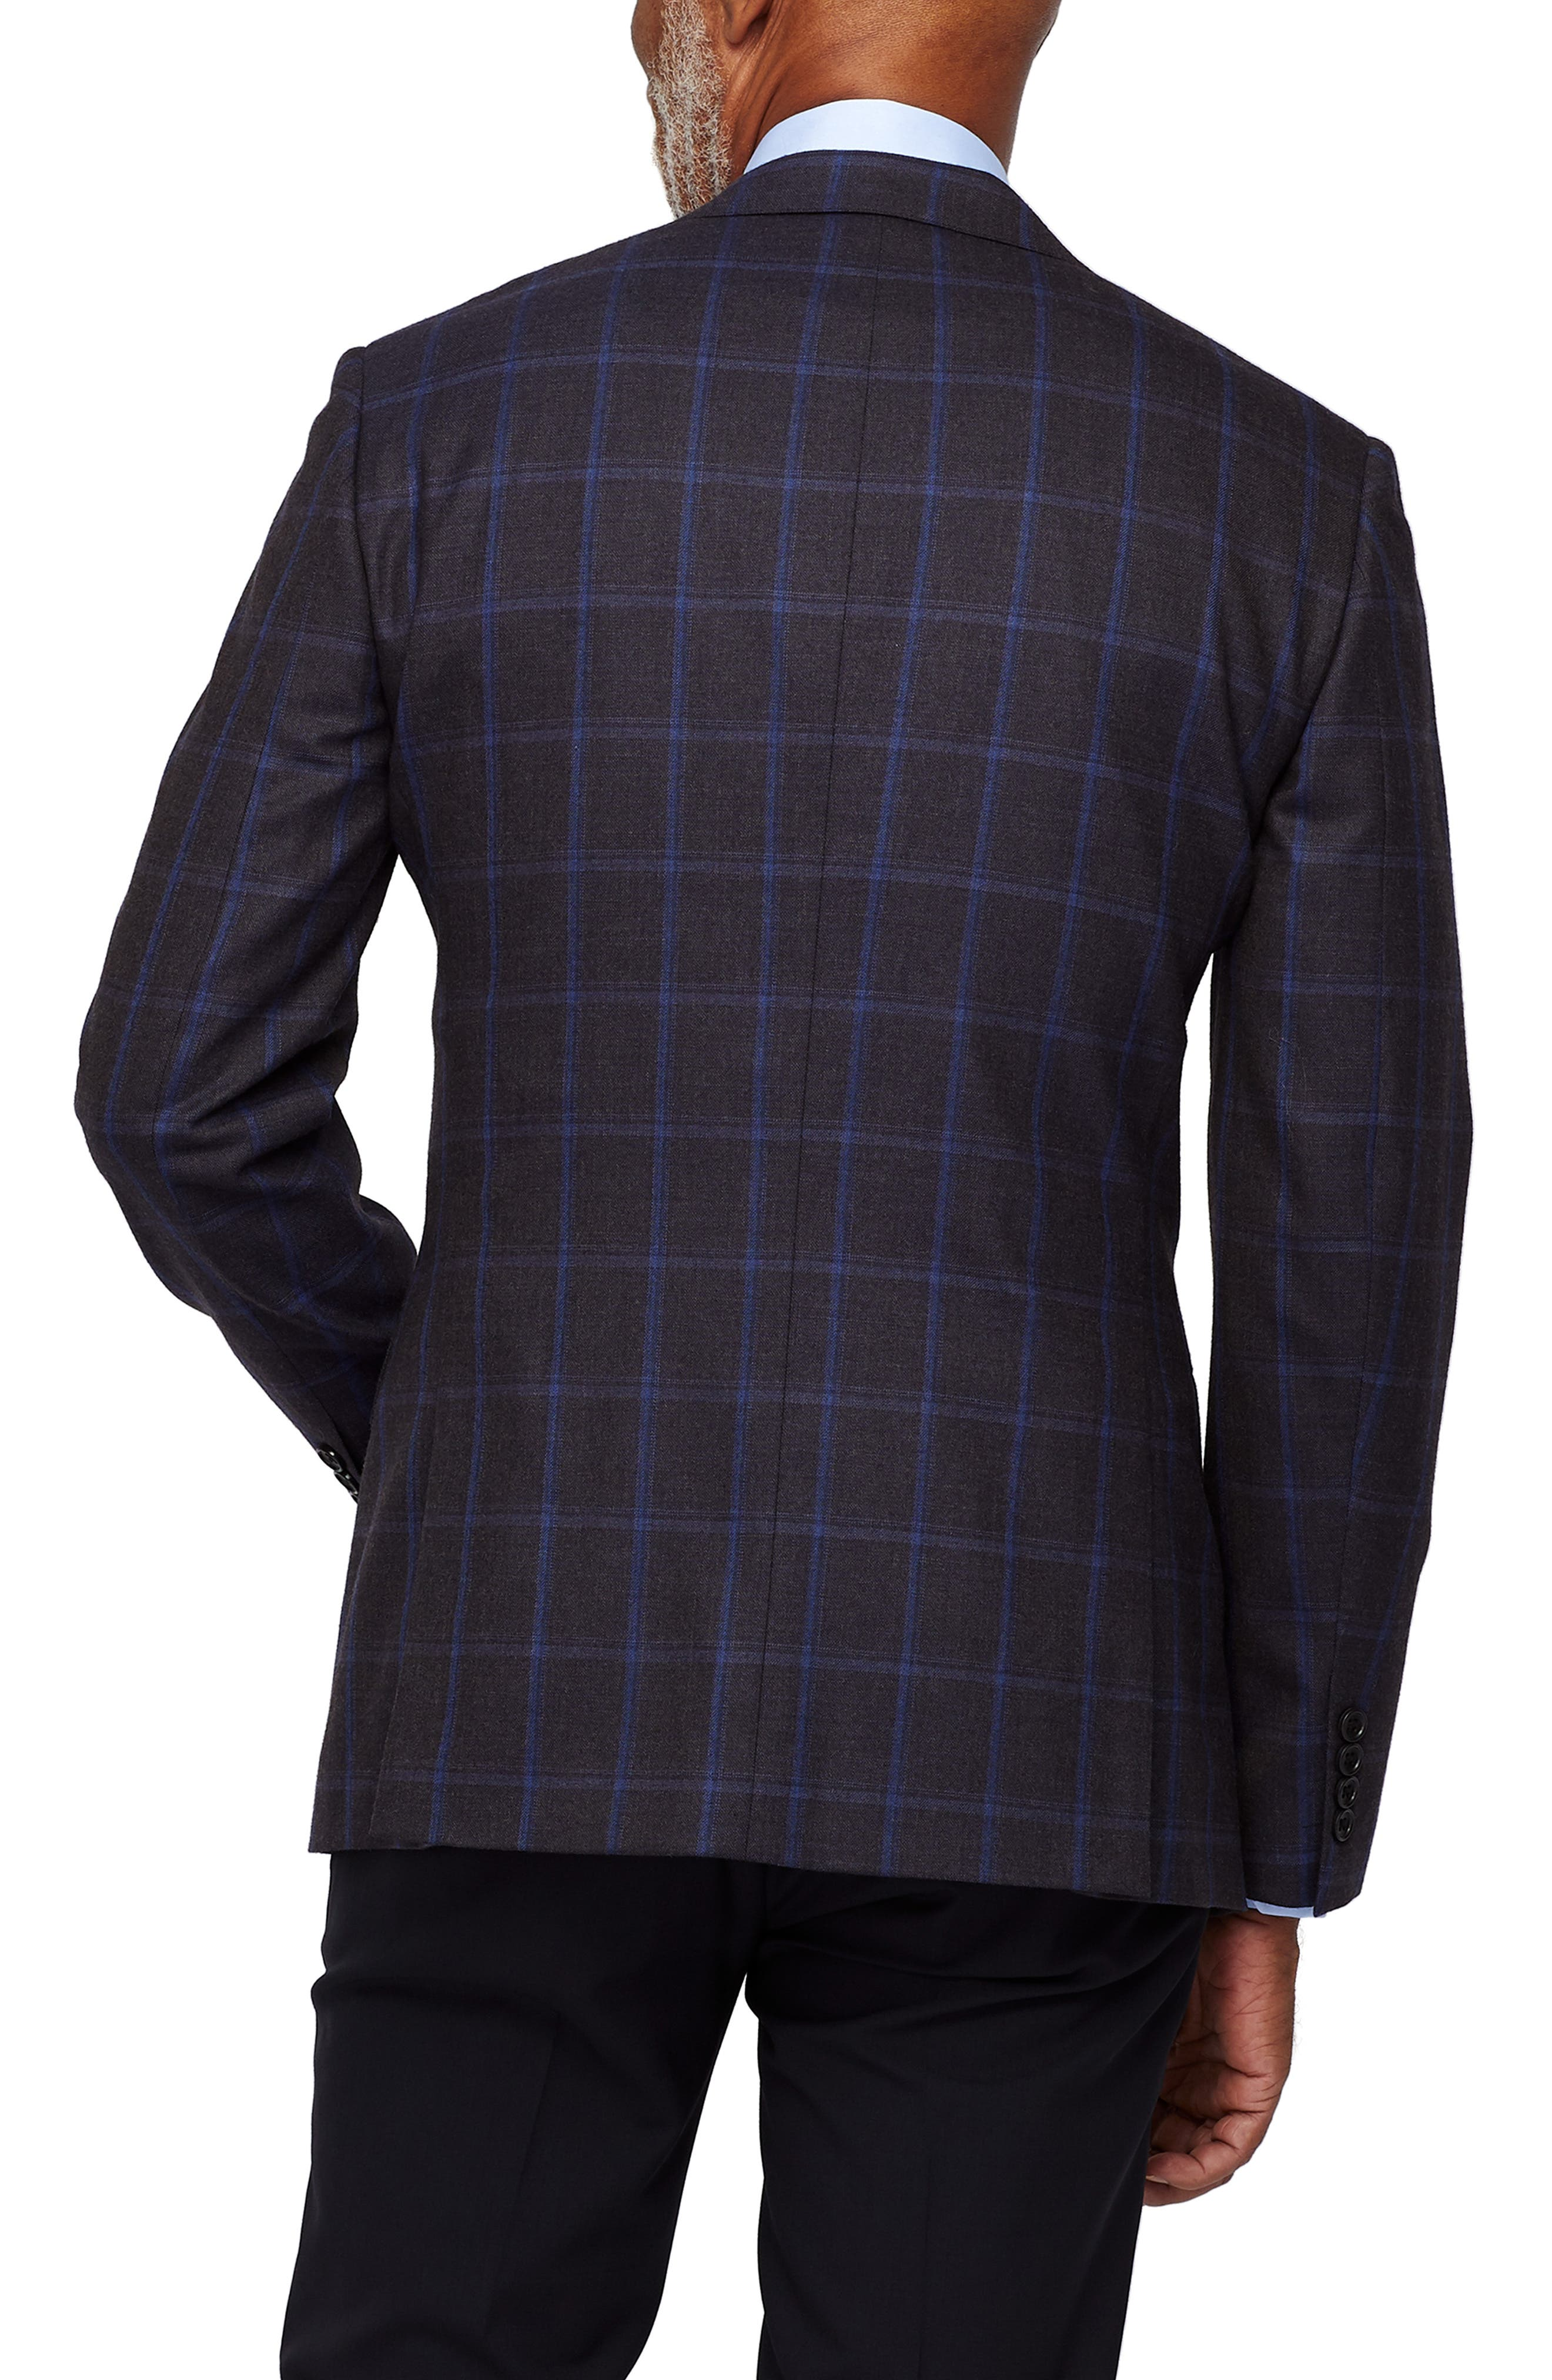 Jetsetter Stretch Wool Blazer,                             Alternate thumbnail 2, color,                             BLUE AND SLATE WINDOWPANE